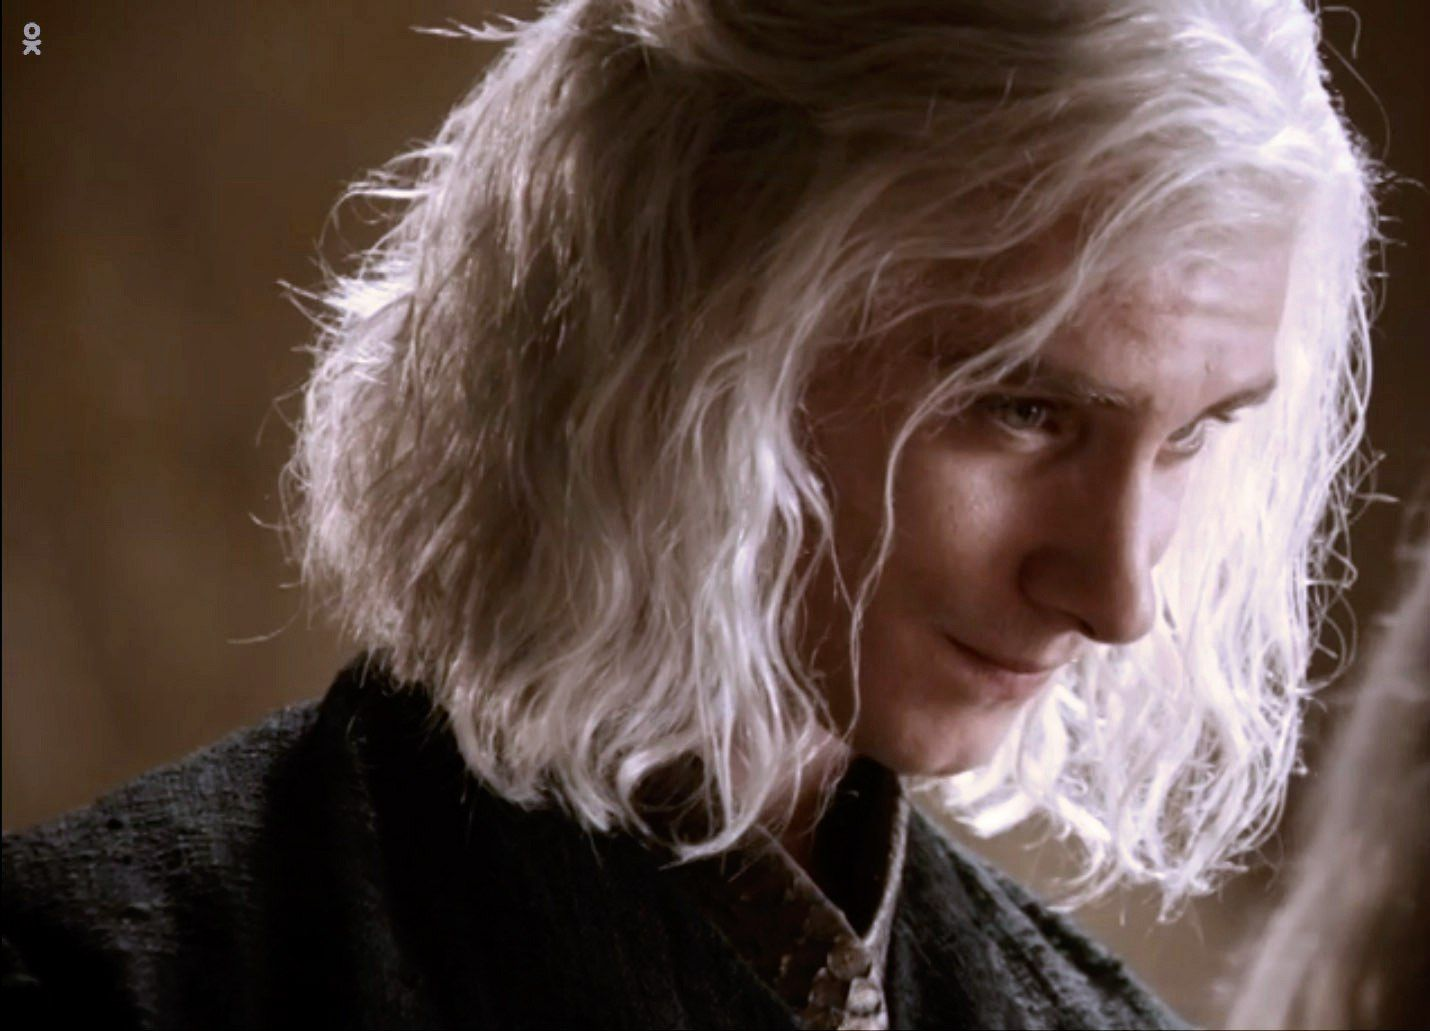 So gorgeous | Viserys Targaryen | Game of thrones characters